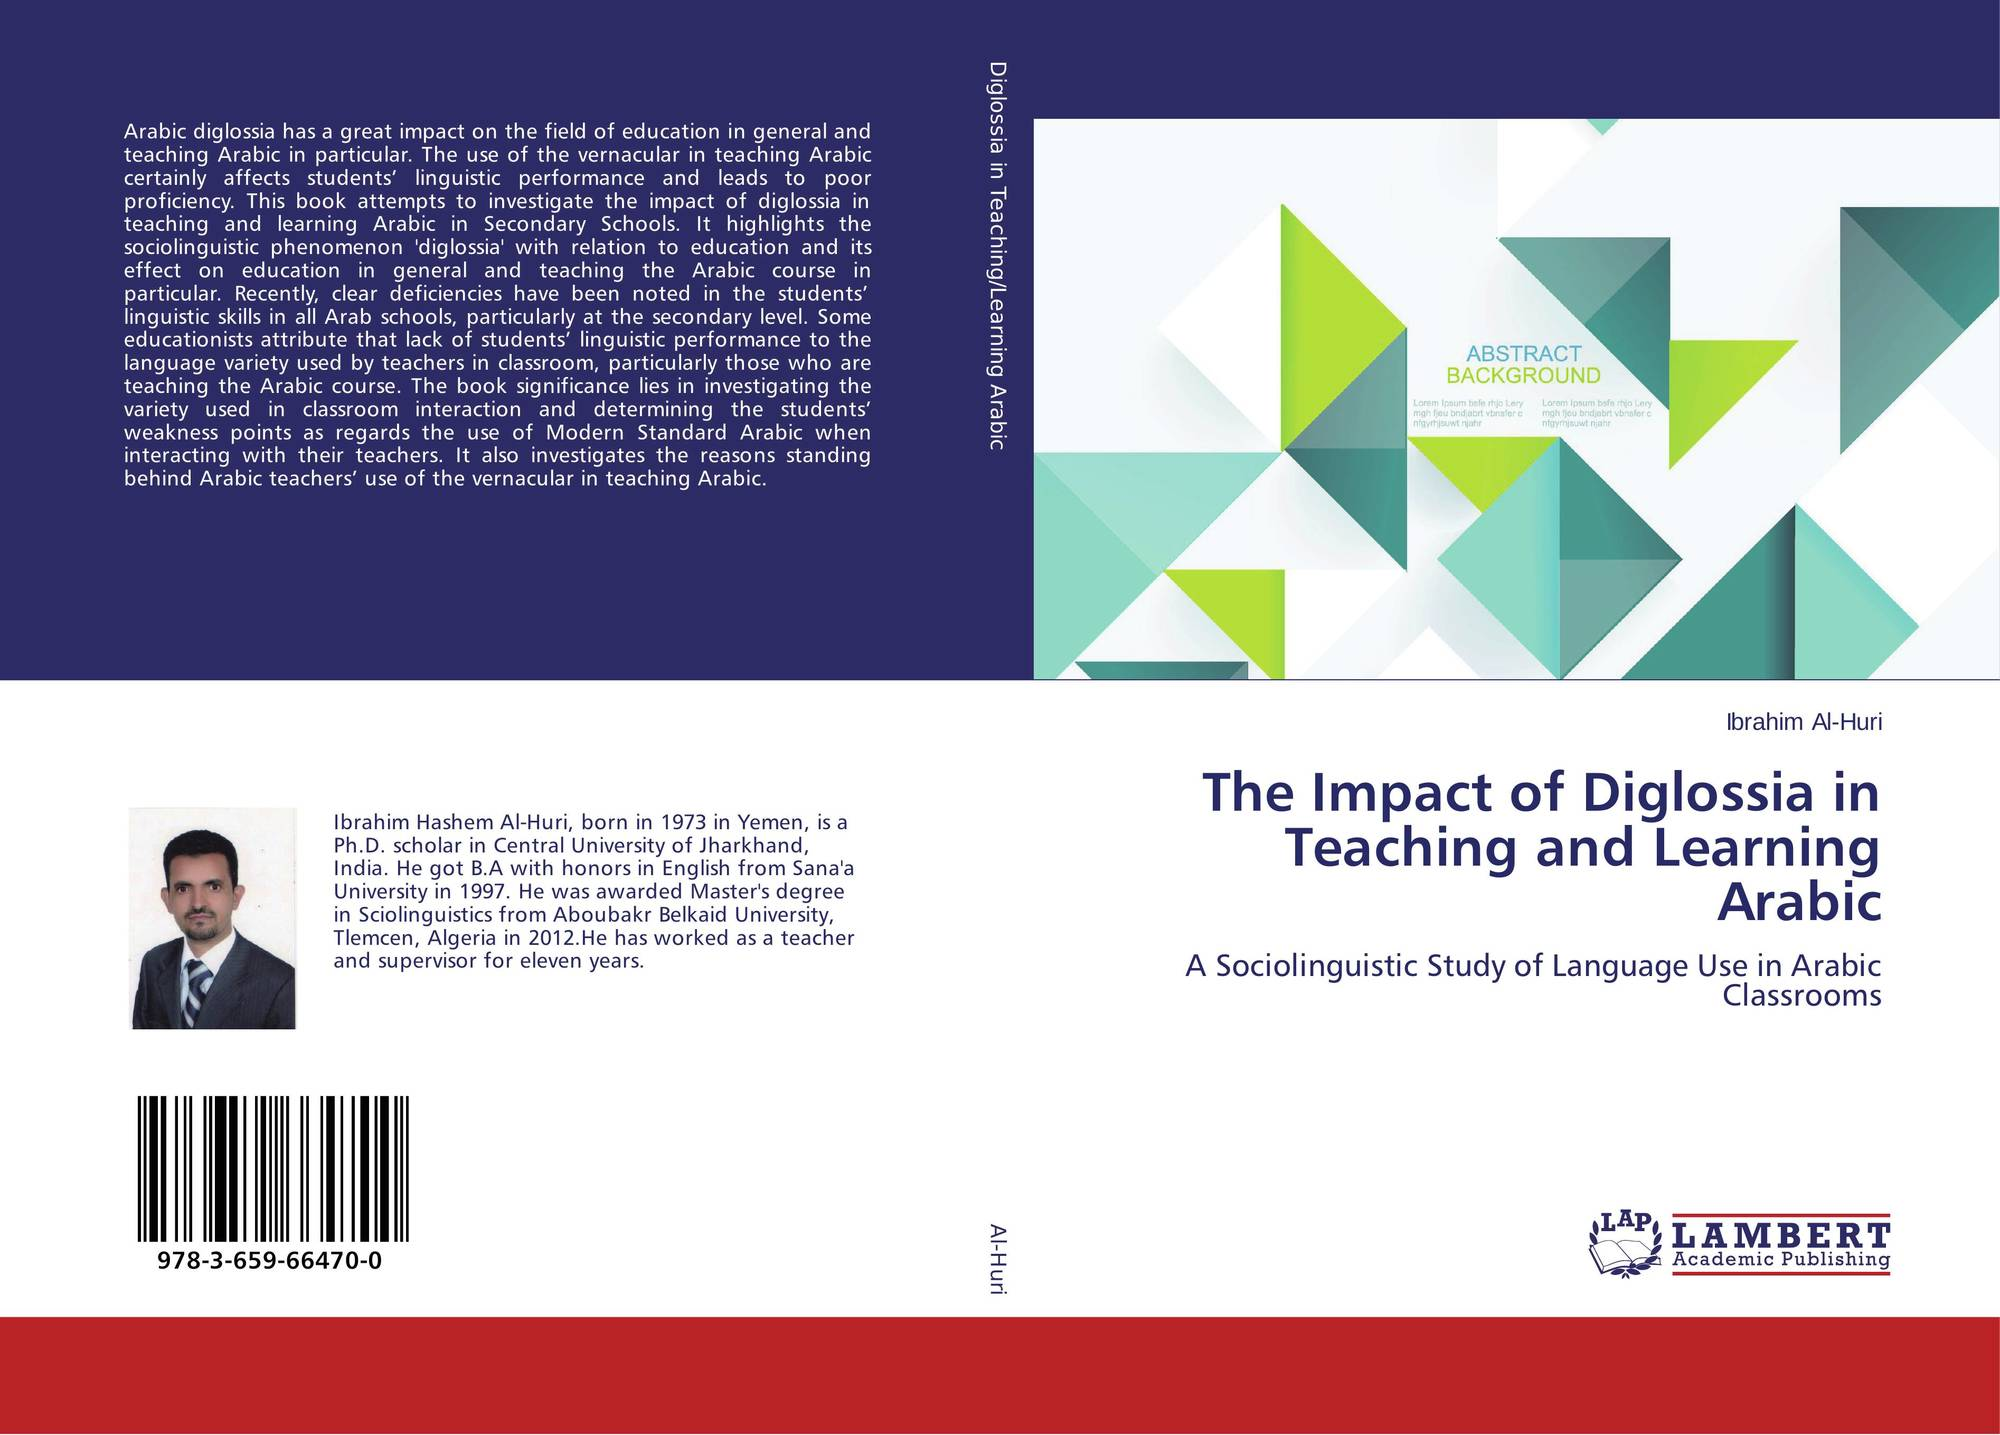 The Impact of Diglossia in Teaching and Learning Arabic, 978